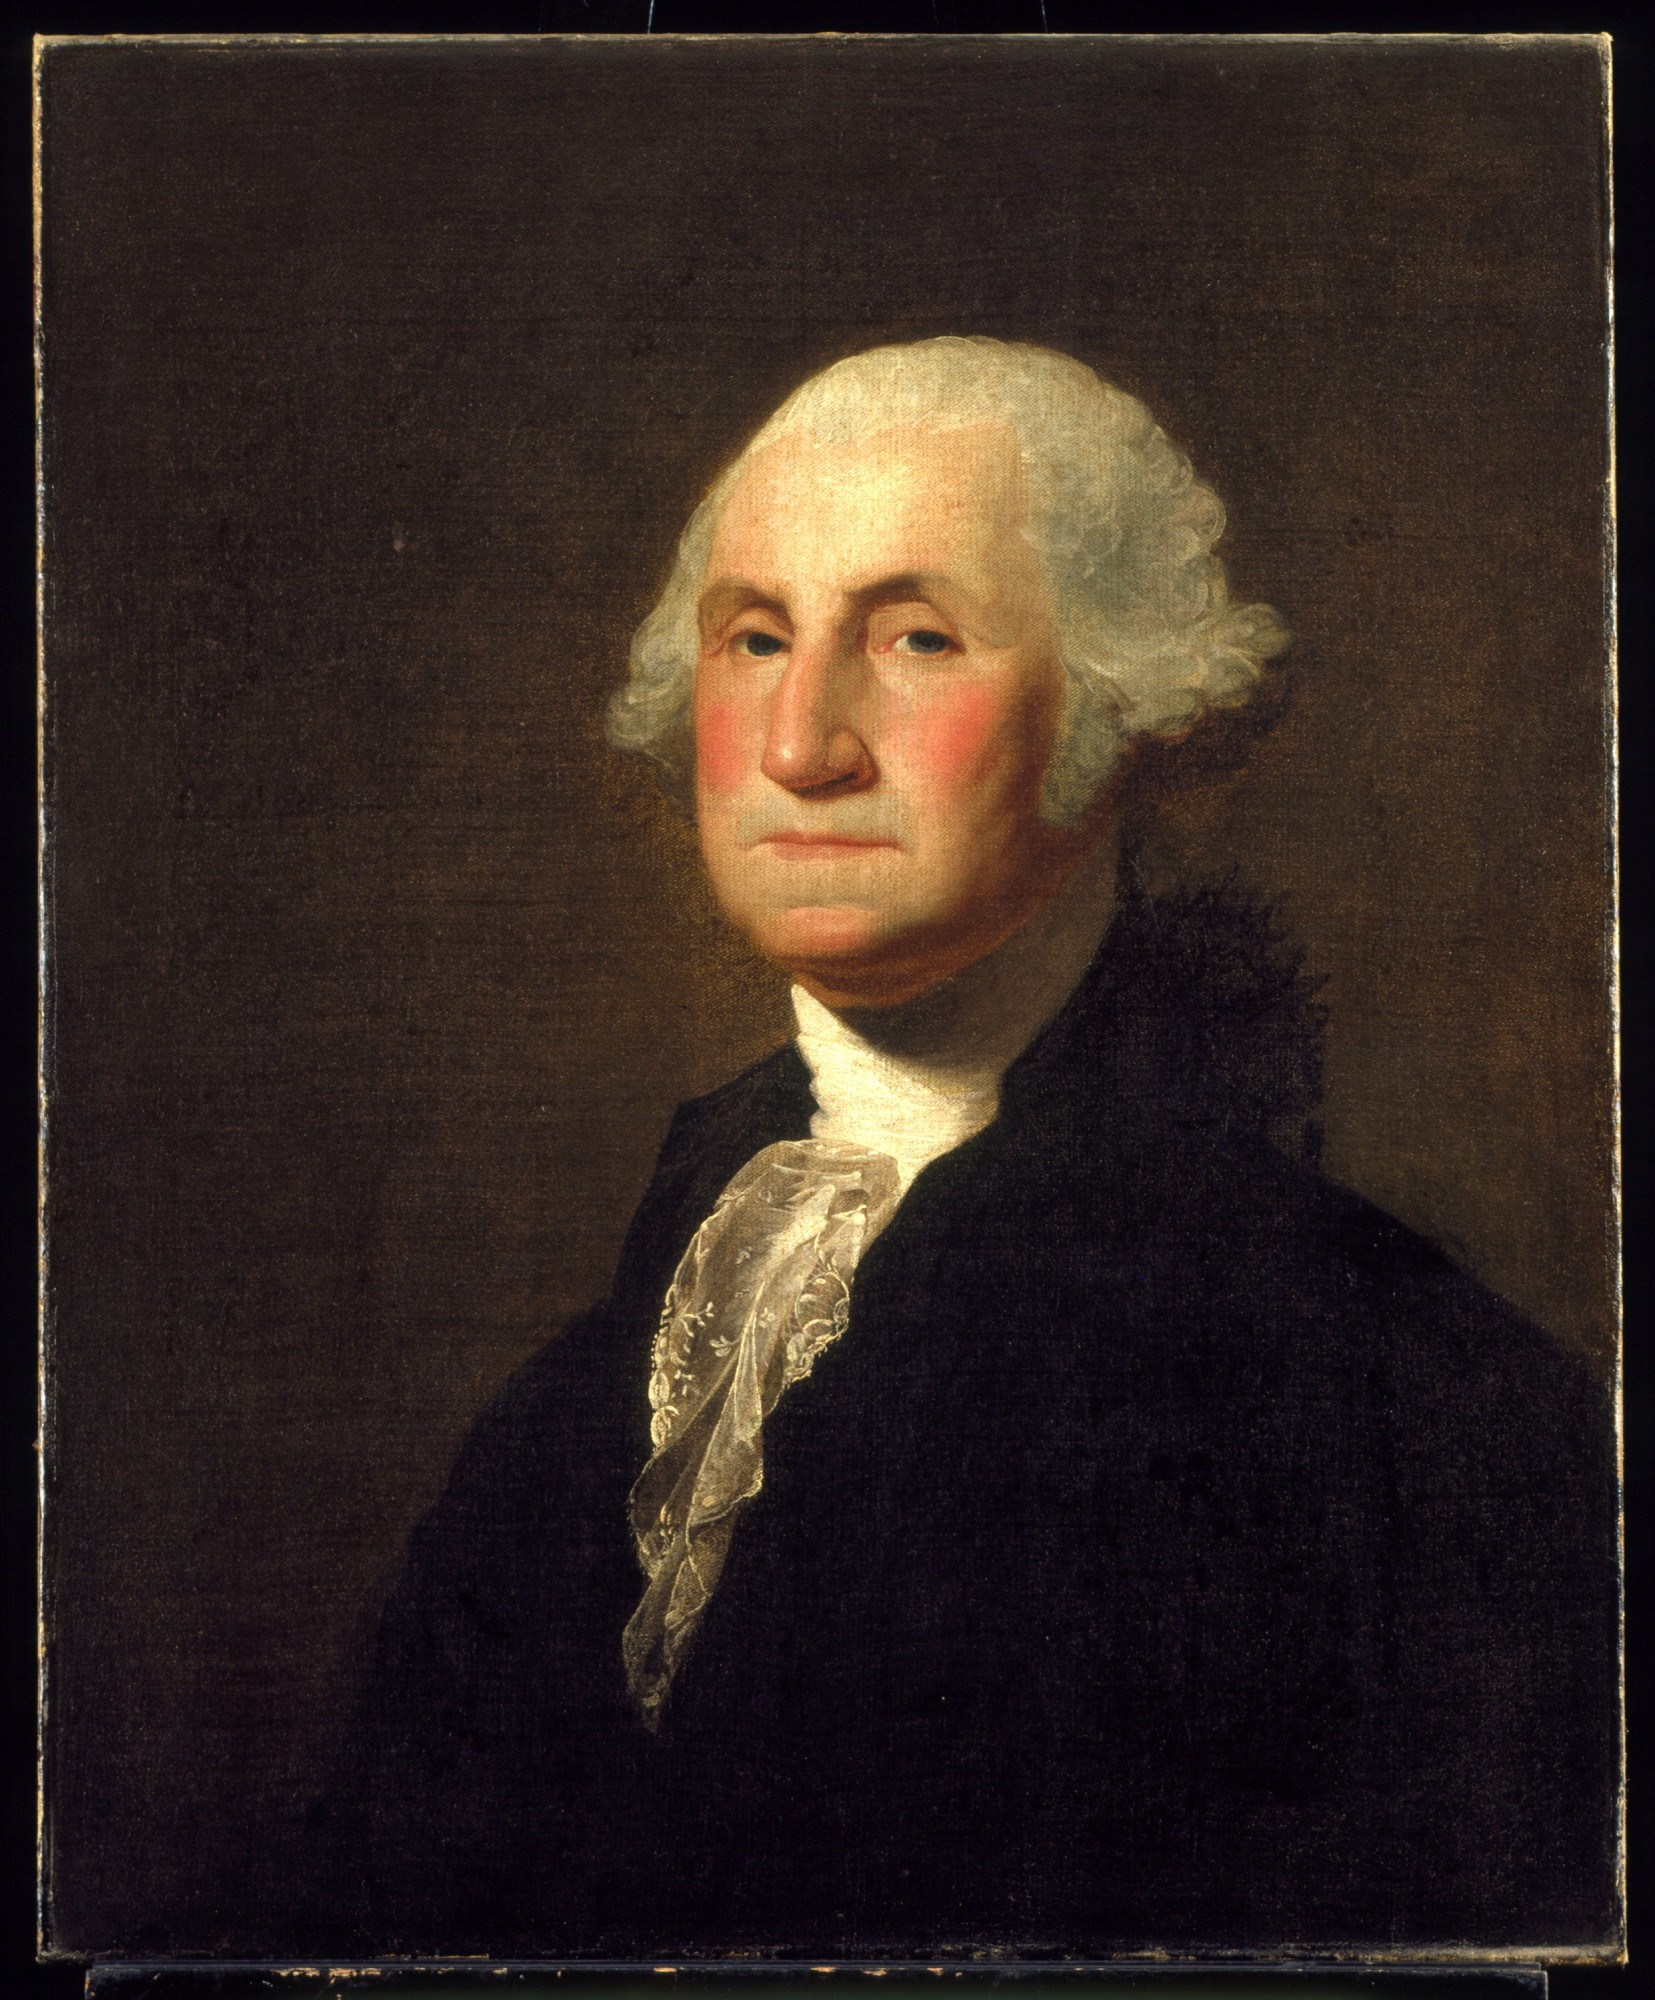 Biography Of George Washington 183 George Washington S Mount